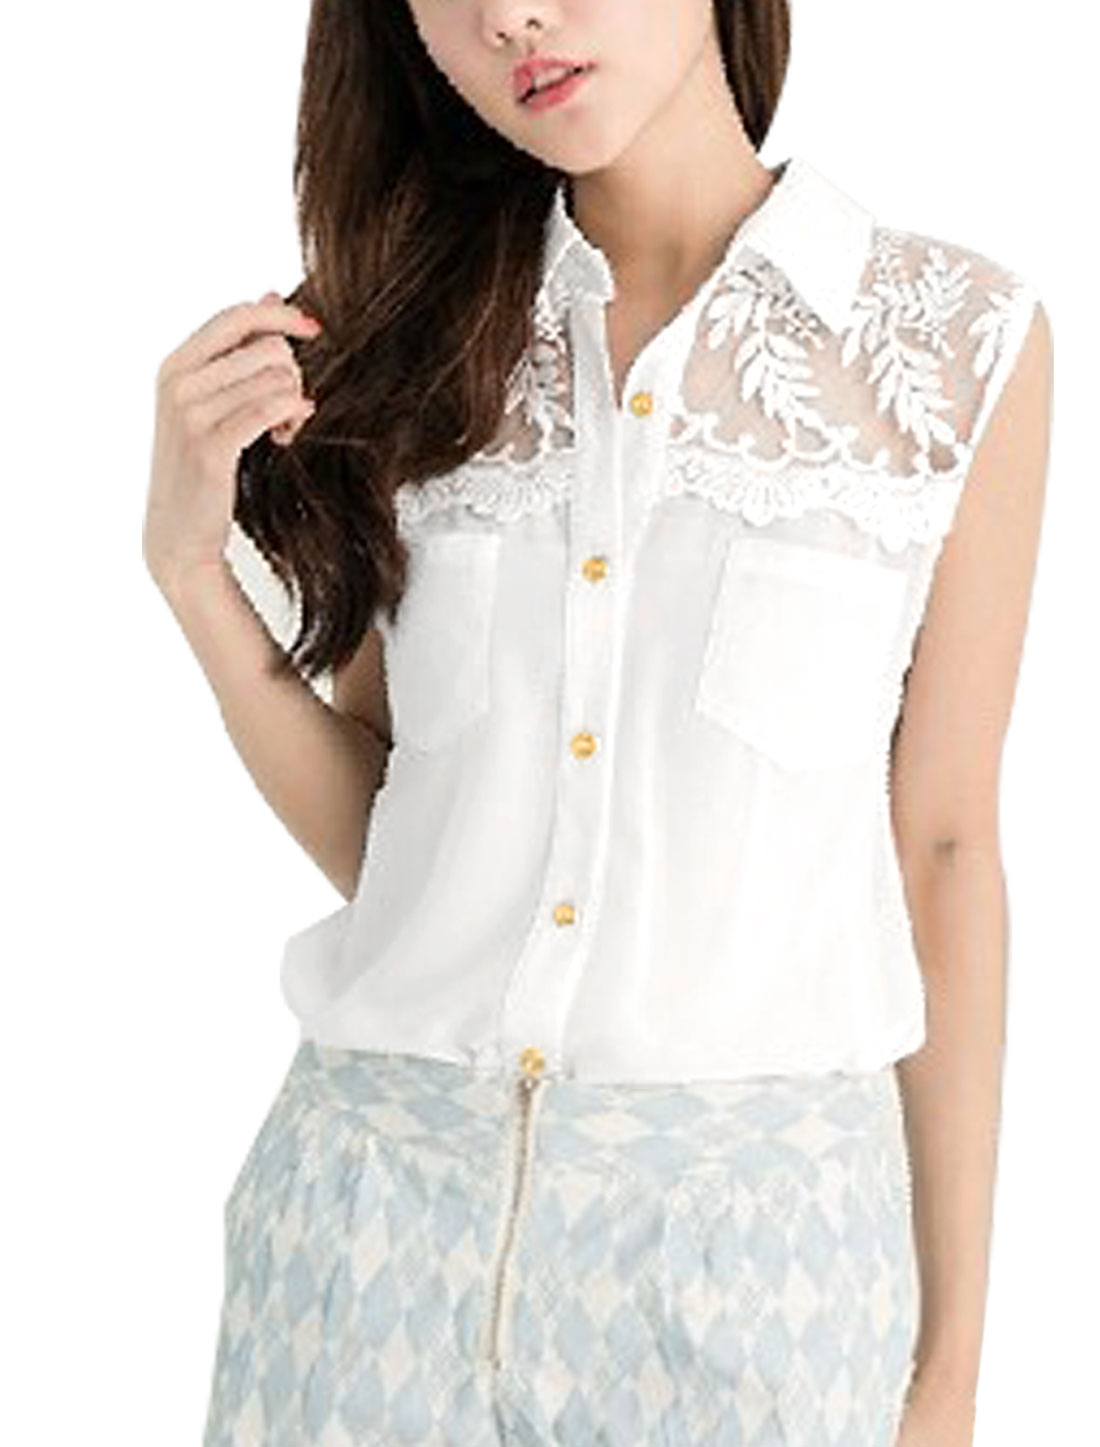 Lady Leaf Embroidery Mesh Patching Sleeveless Sweet Chiffon Top Shirt White XS